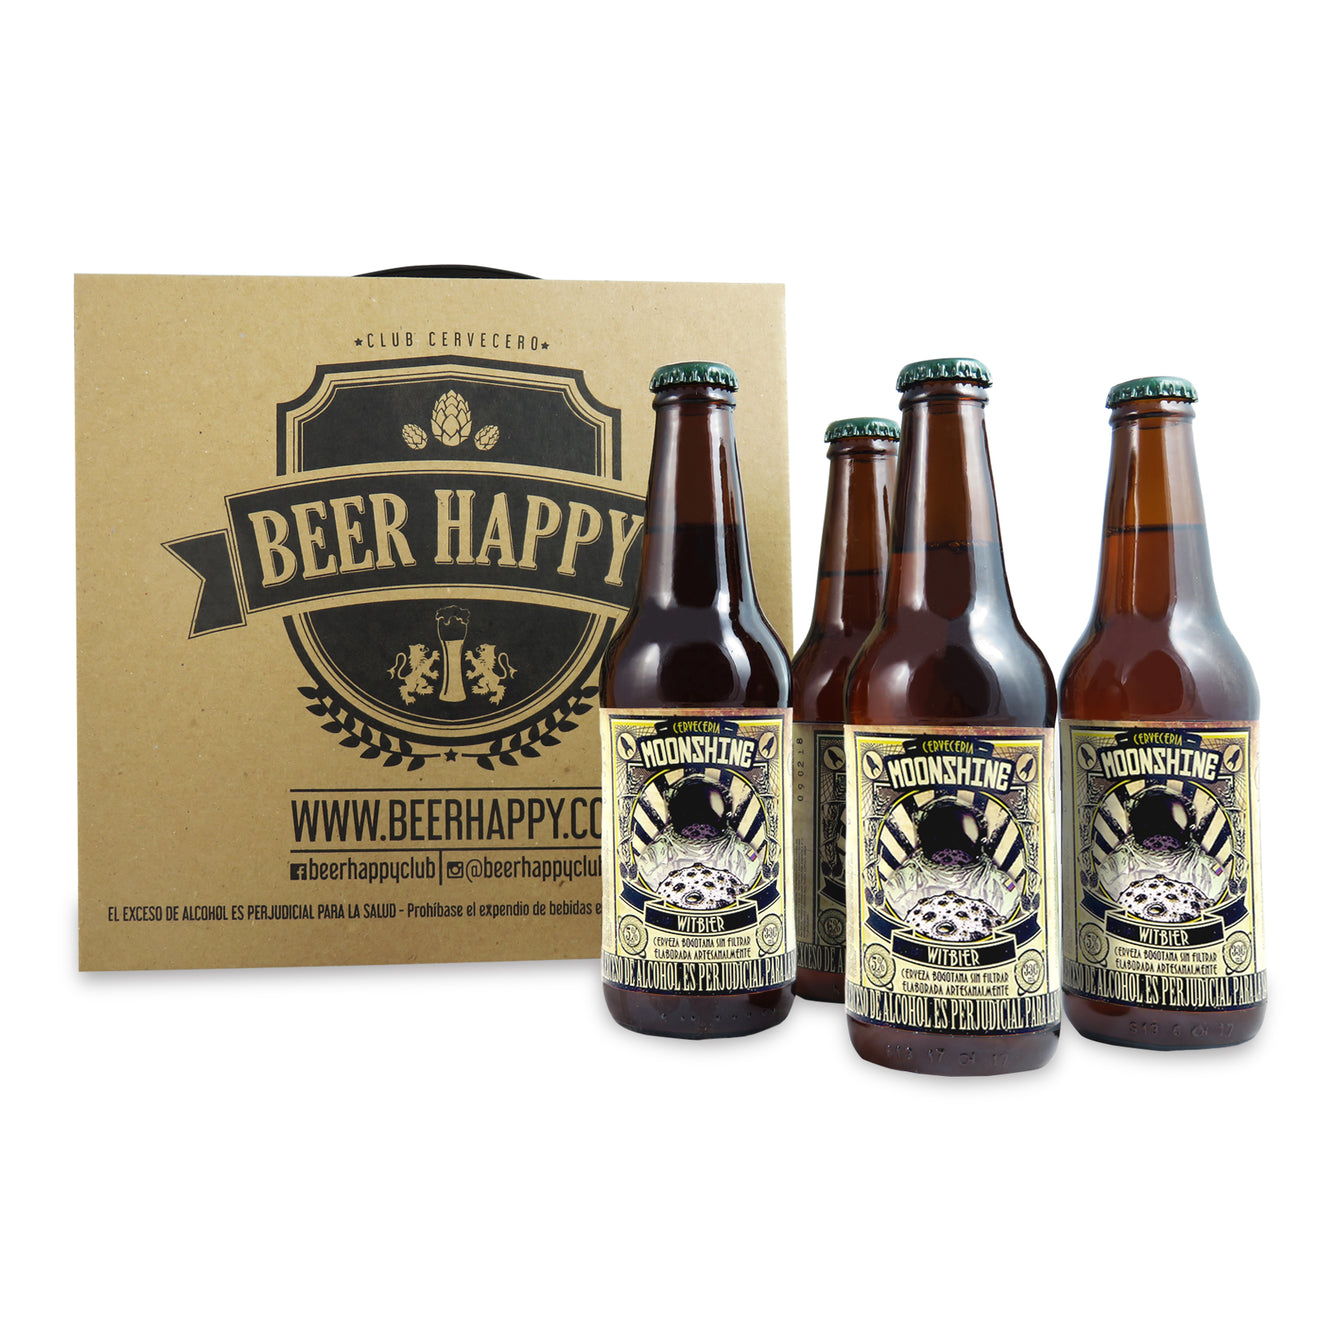 4 PACK - BEER HAPPY - CERVEZA ARTESANAL - COLOMBIANA - MOONSHINE - WITBIER - 330 ML - 5°